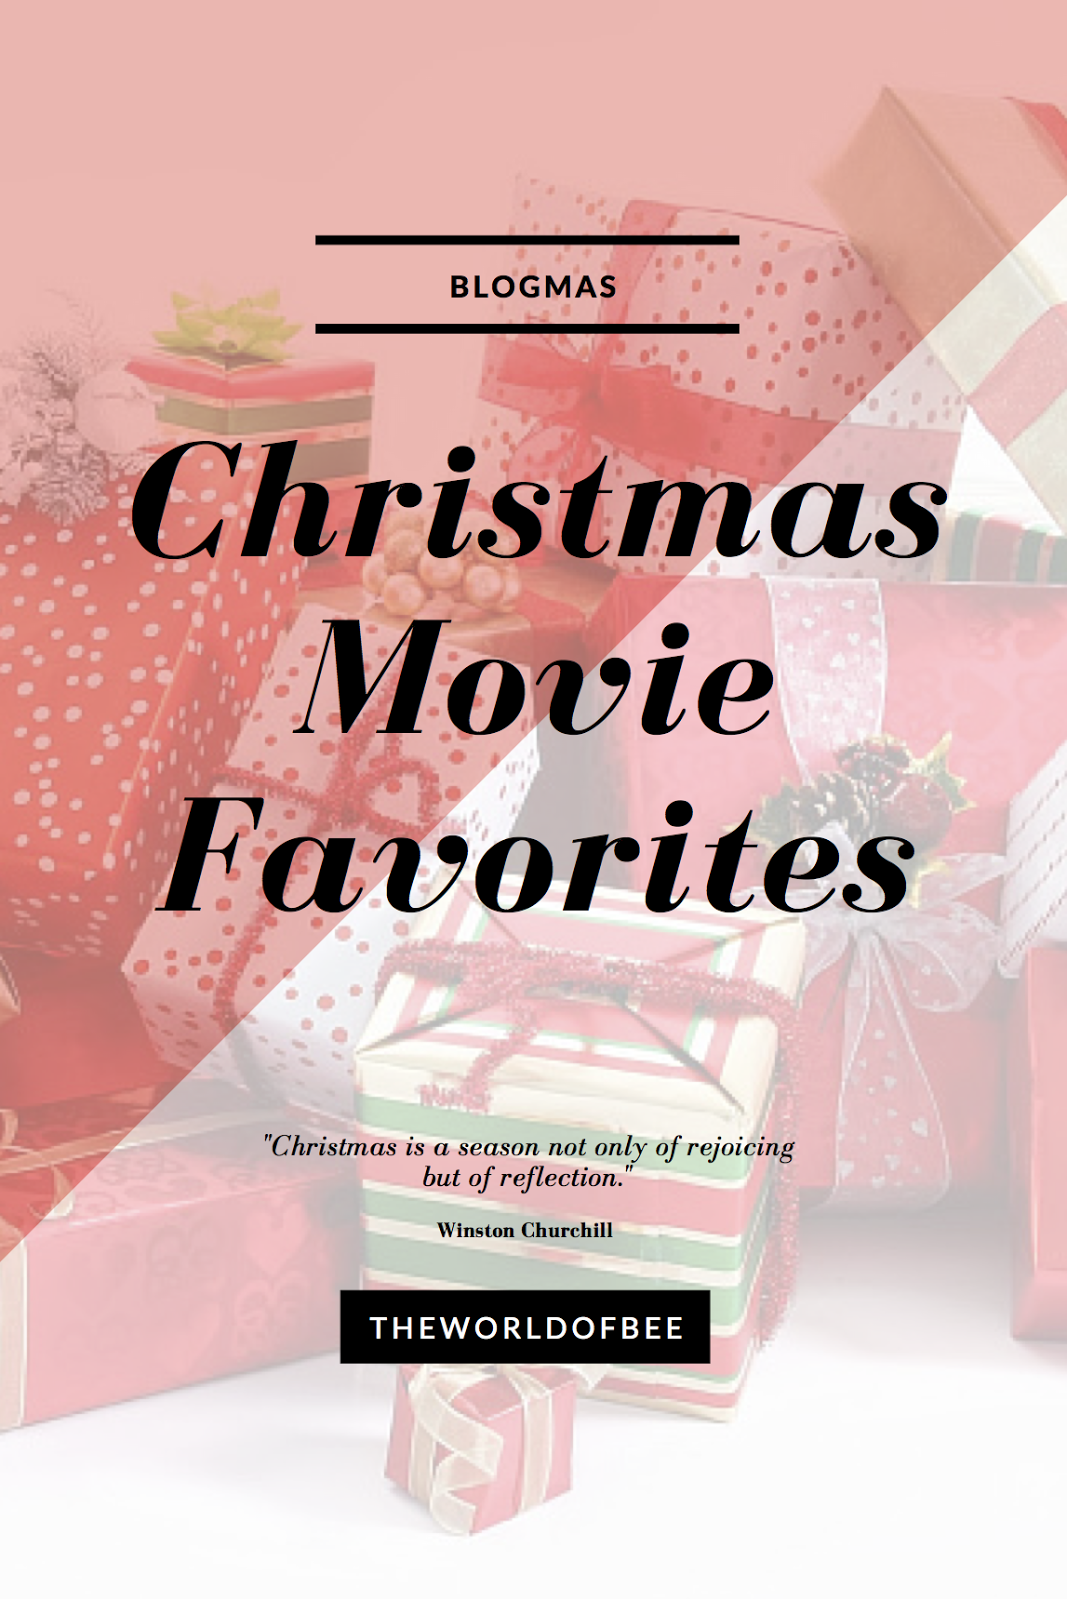 15 Christmas Movies to Keep You Busy and Happy